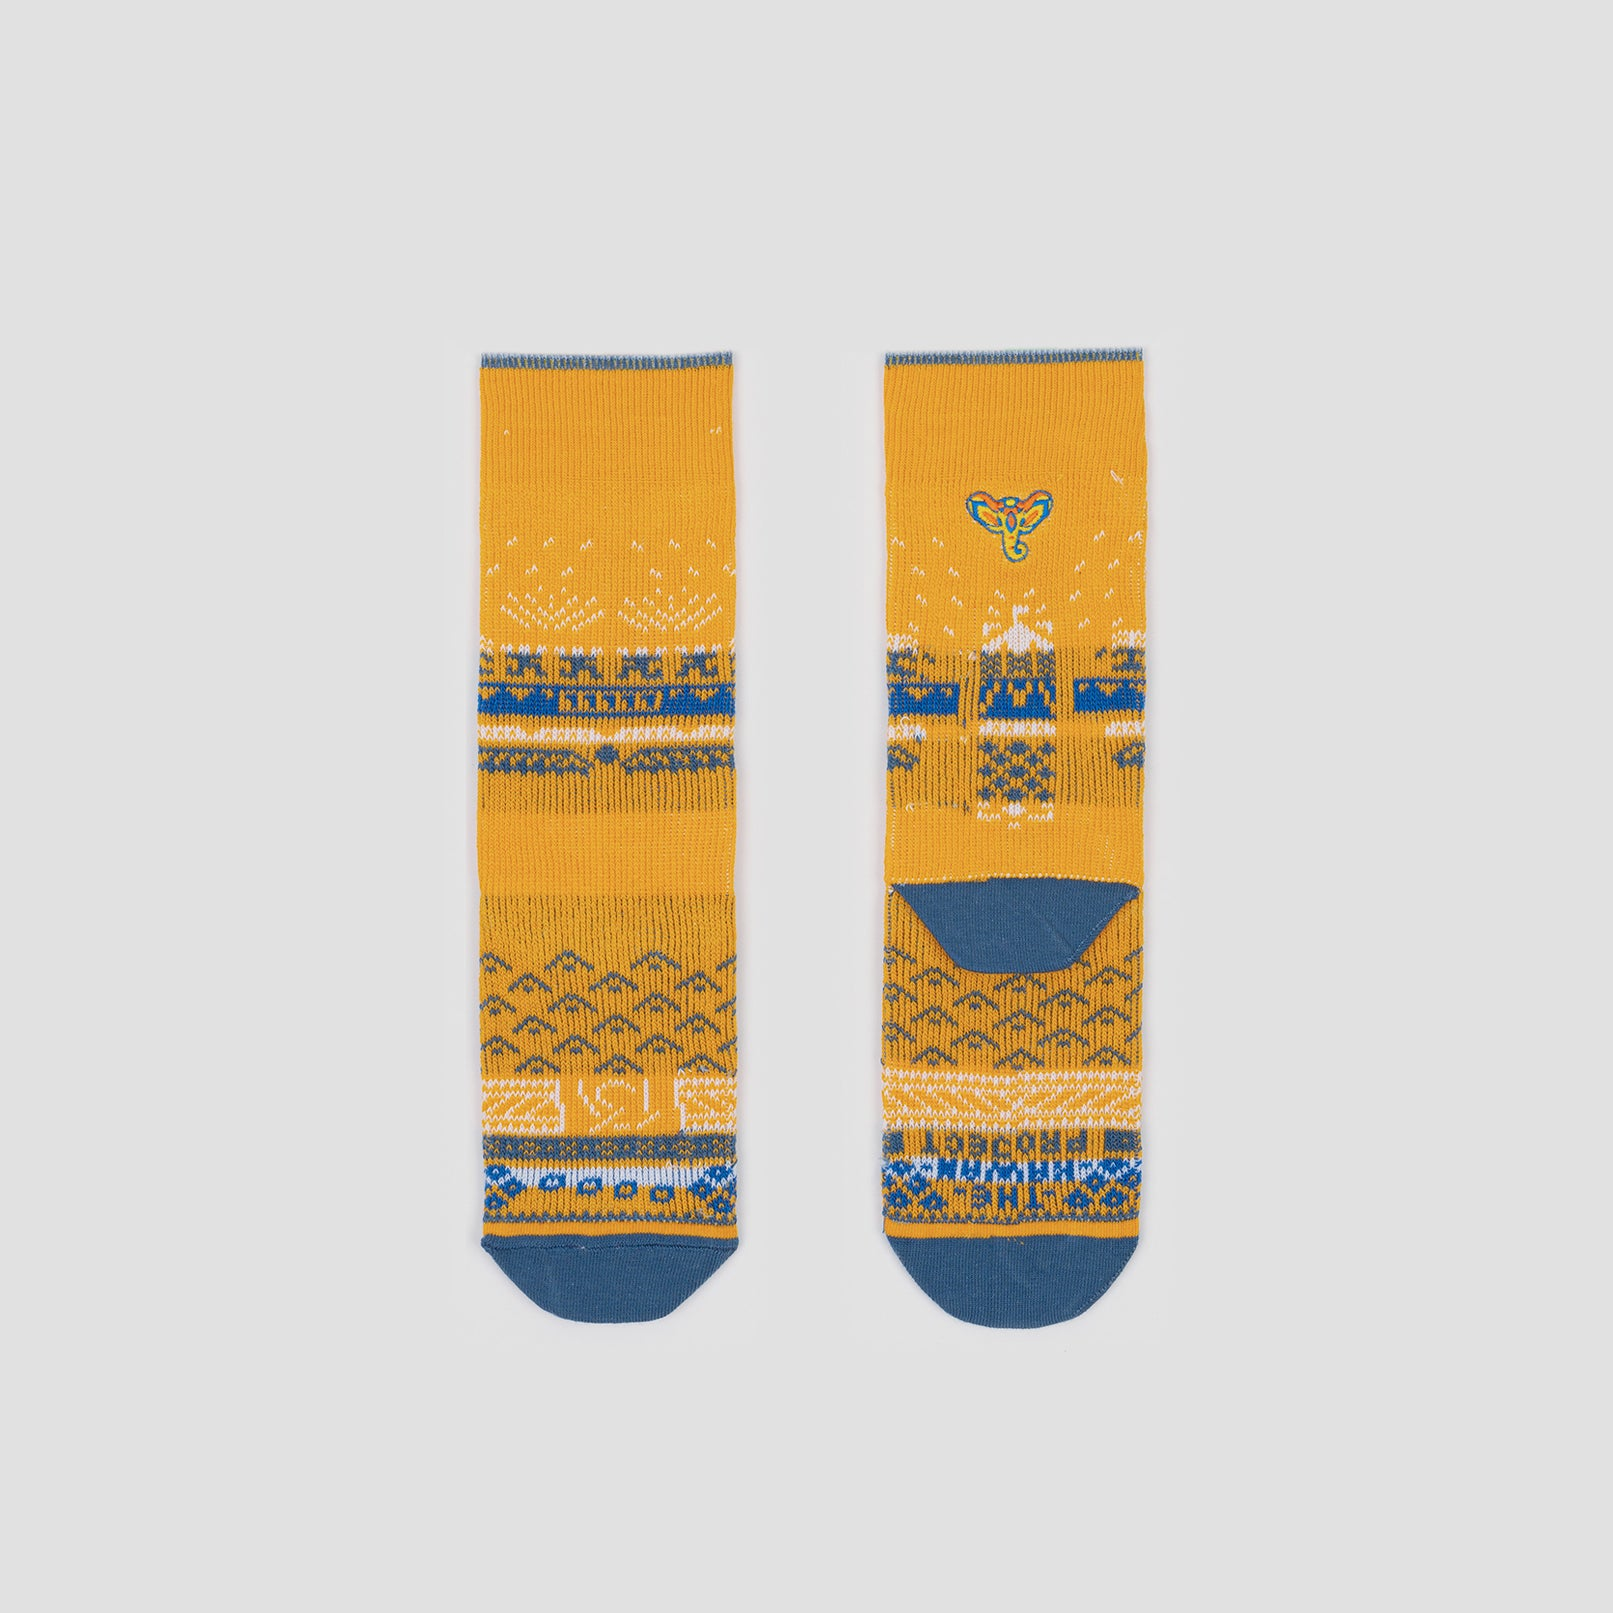 Greater 2gether - Yellow Socks